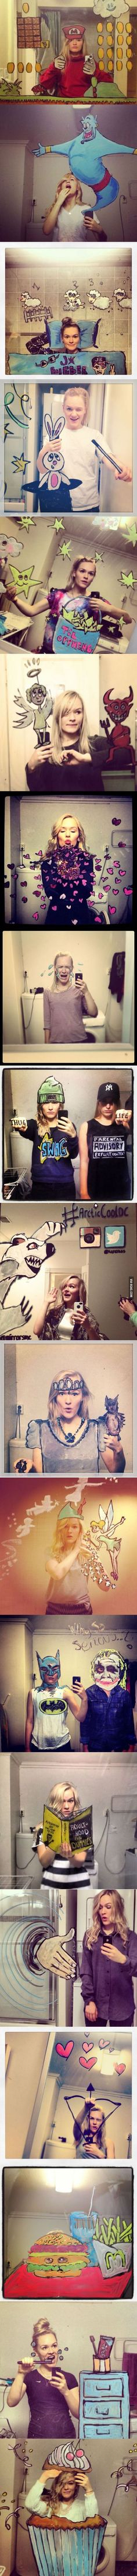 This girl takes her selfies to the next level. Great ideas for taking selfies.